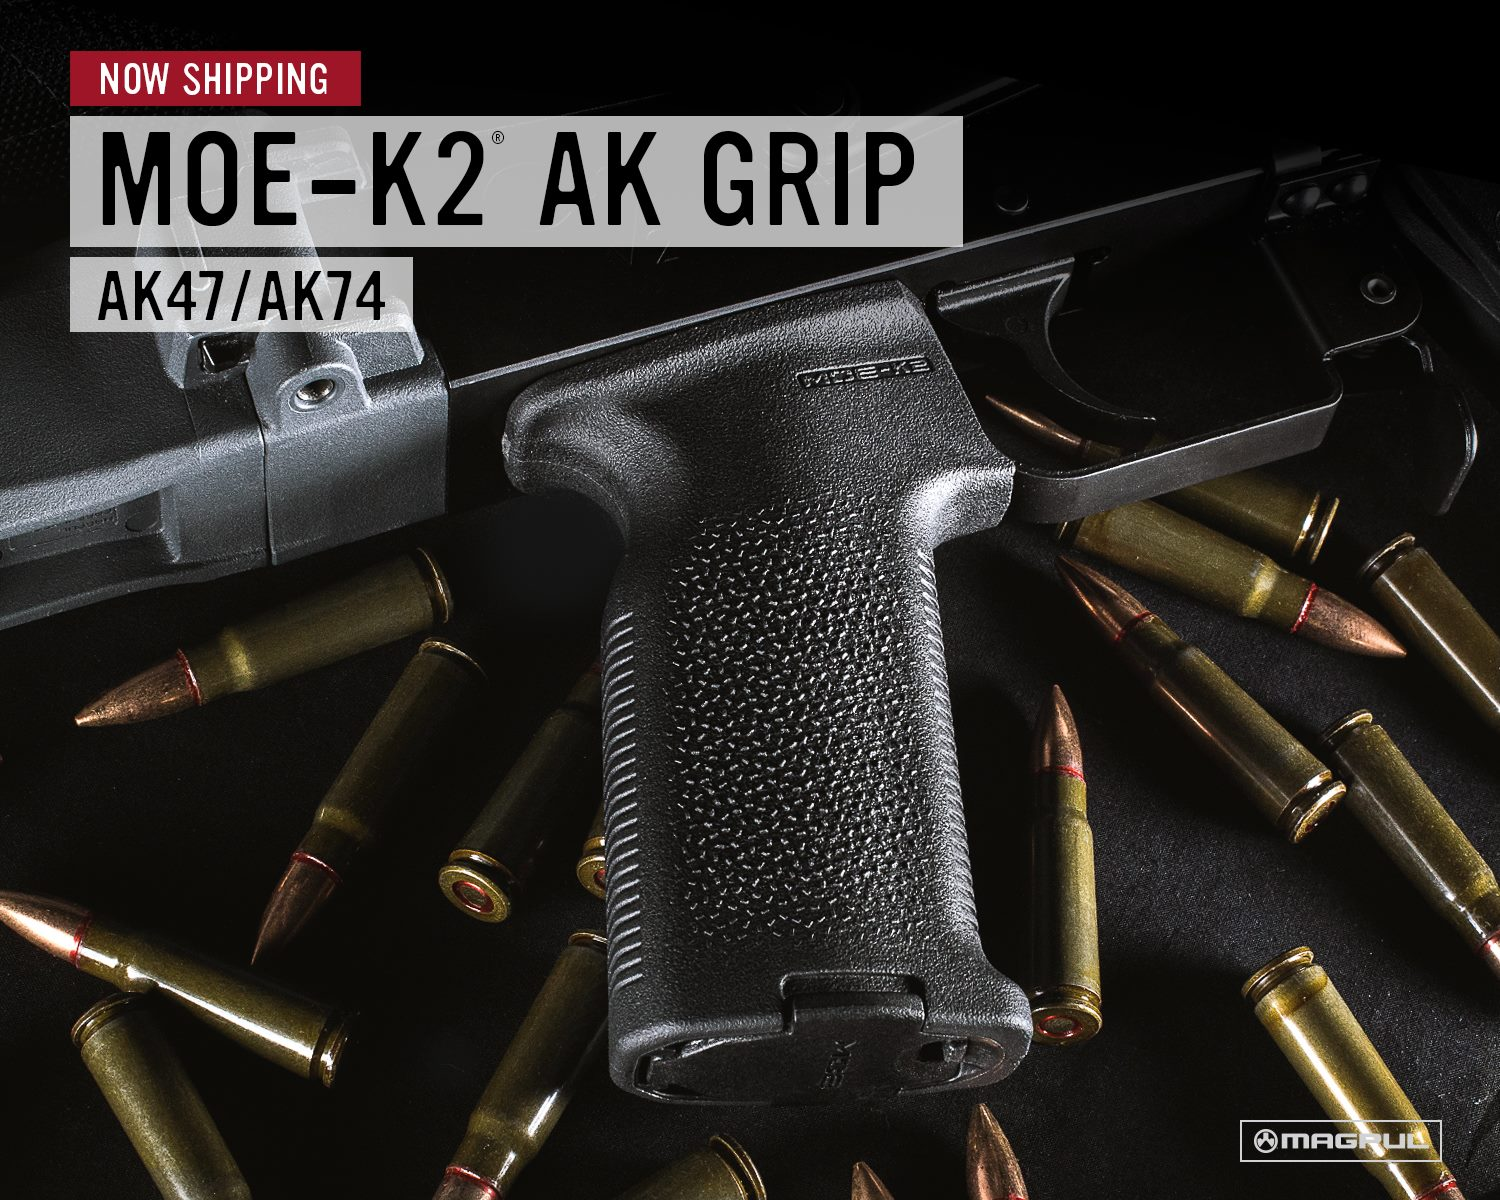 Now Shipping: Magpul MOE-K2 AK Grip and MOE-SL AK Grip